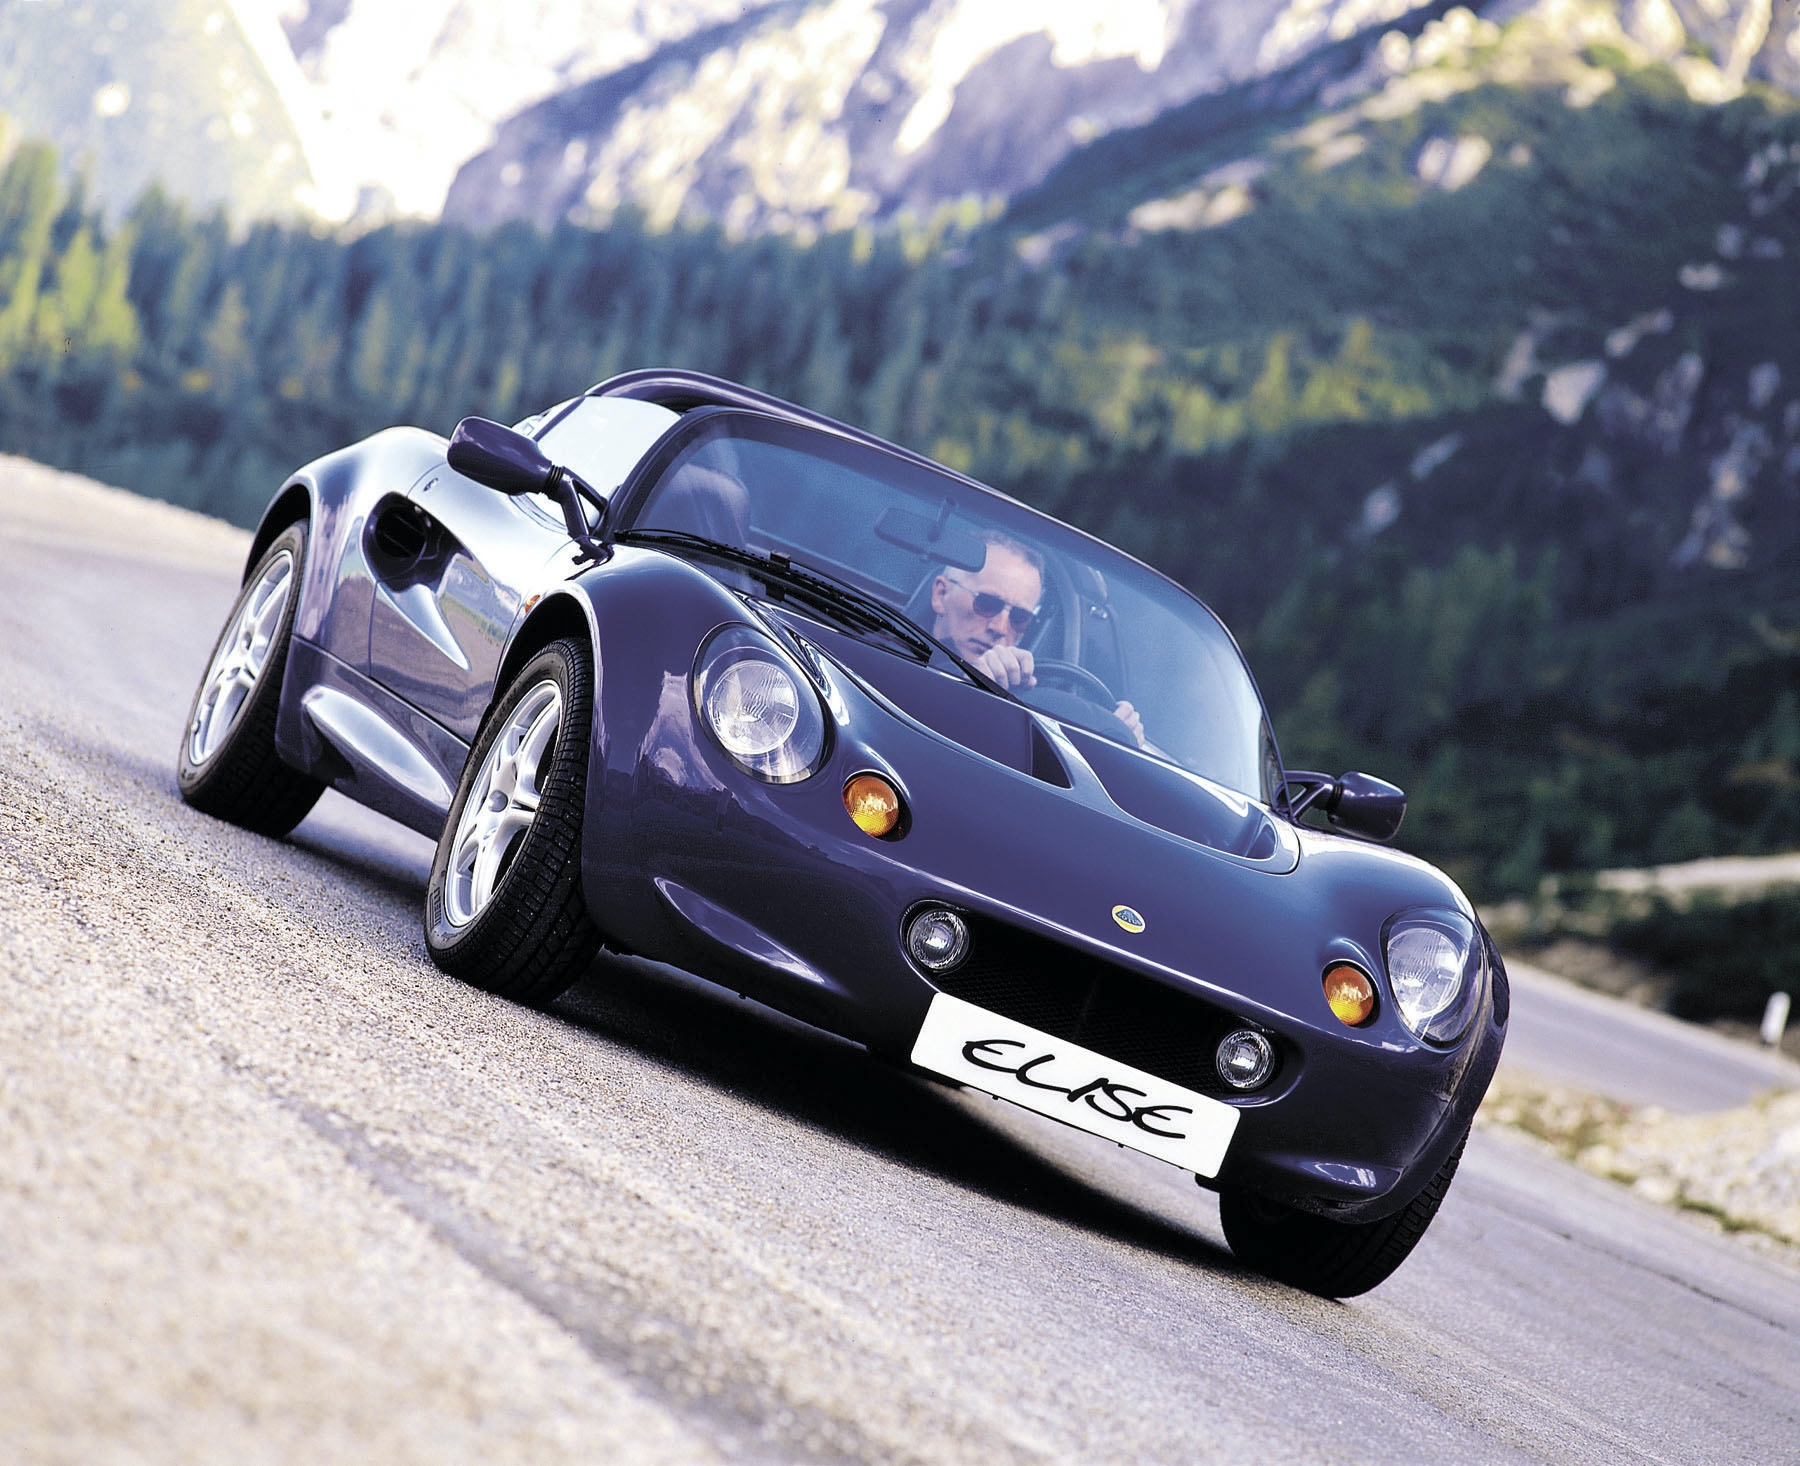 The Elise may live on as Lotus considers selling tooling